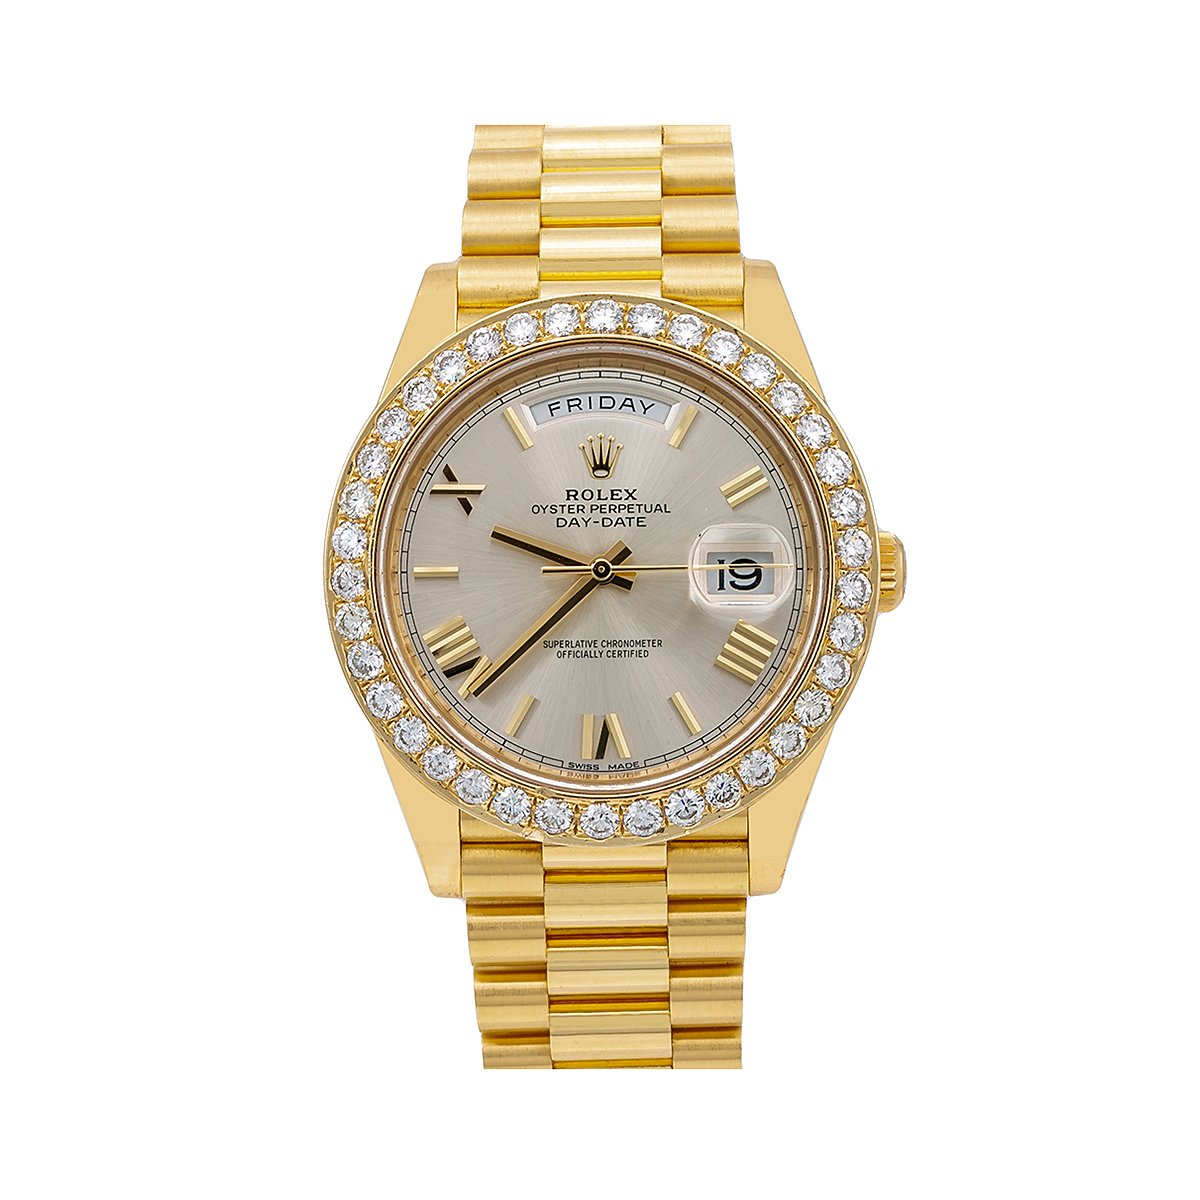 Rolex Day-Date Diamond Watch, 228238 40mm, Silver Dial With 2.25 CT Diamonds